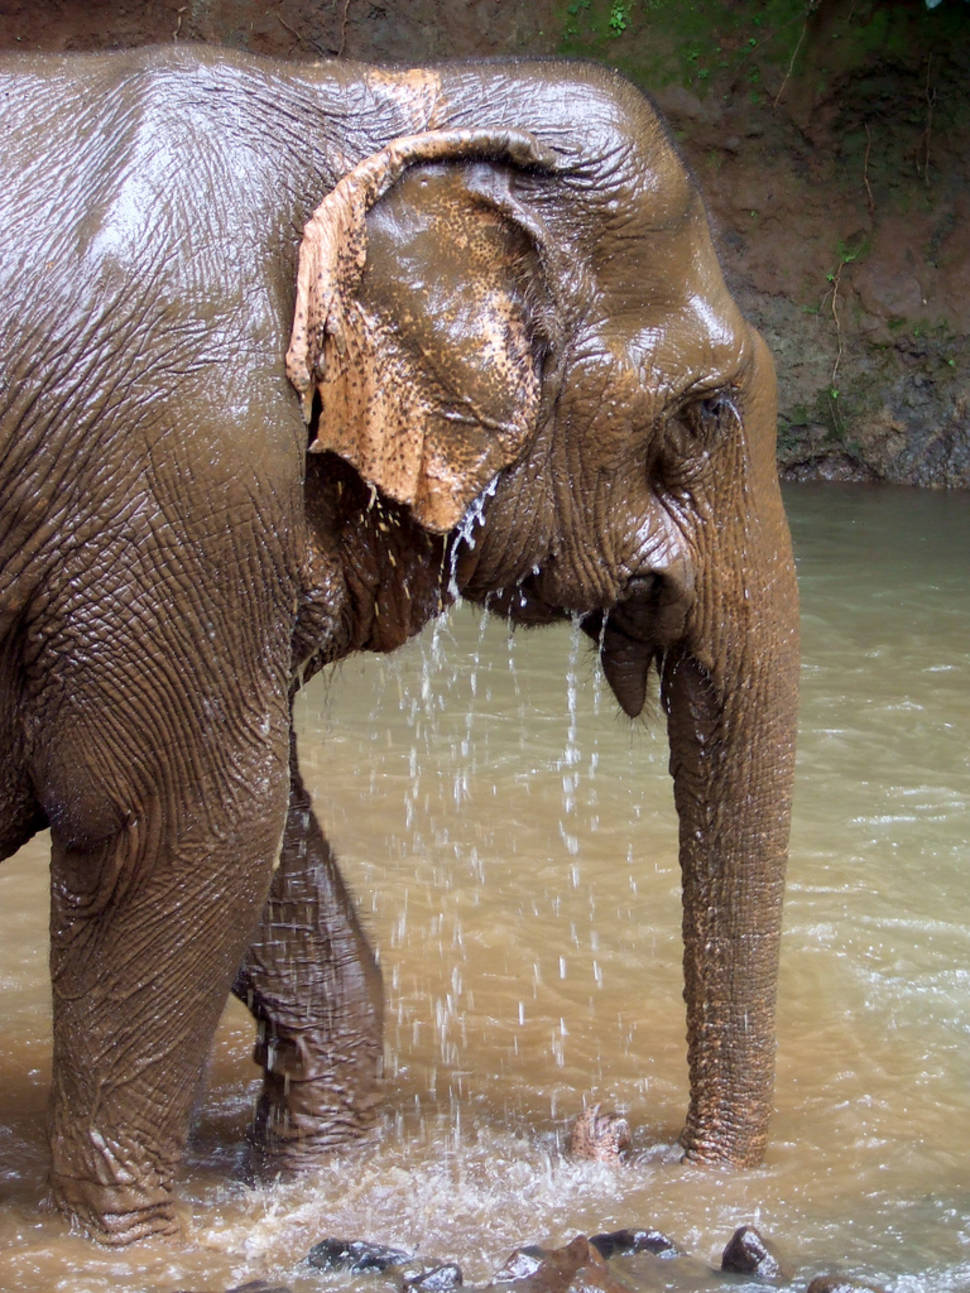 Best time to see Wash an Elephant in Cambodia